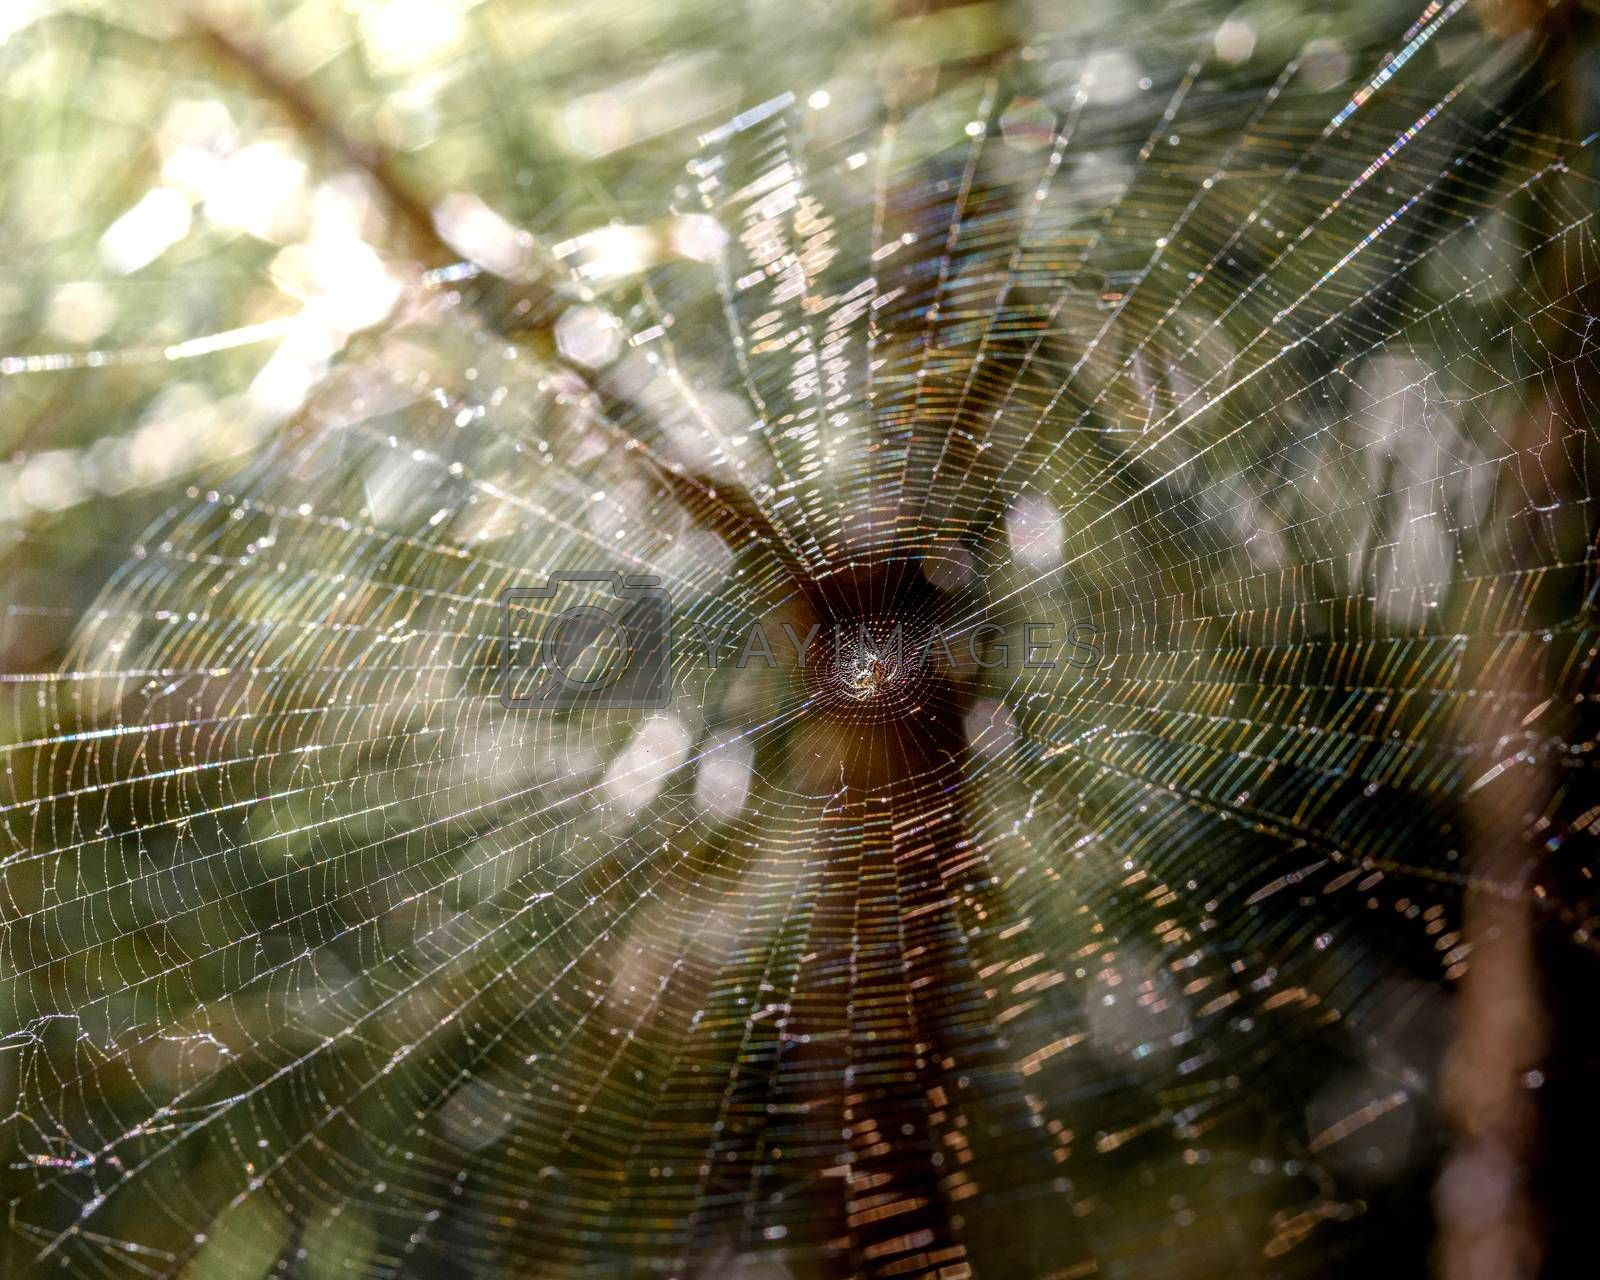 Web with a spider in the forest on trees, illuminated by the sun